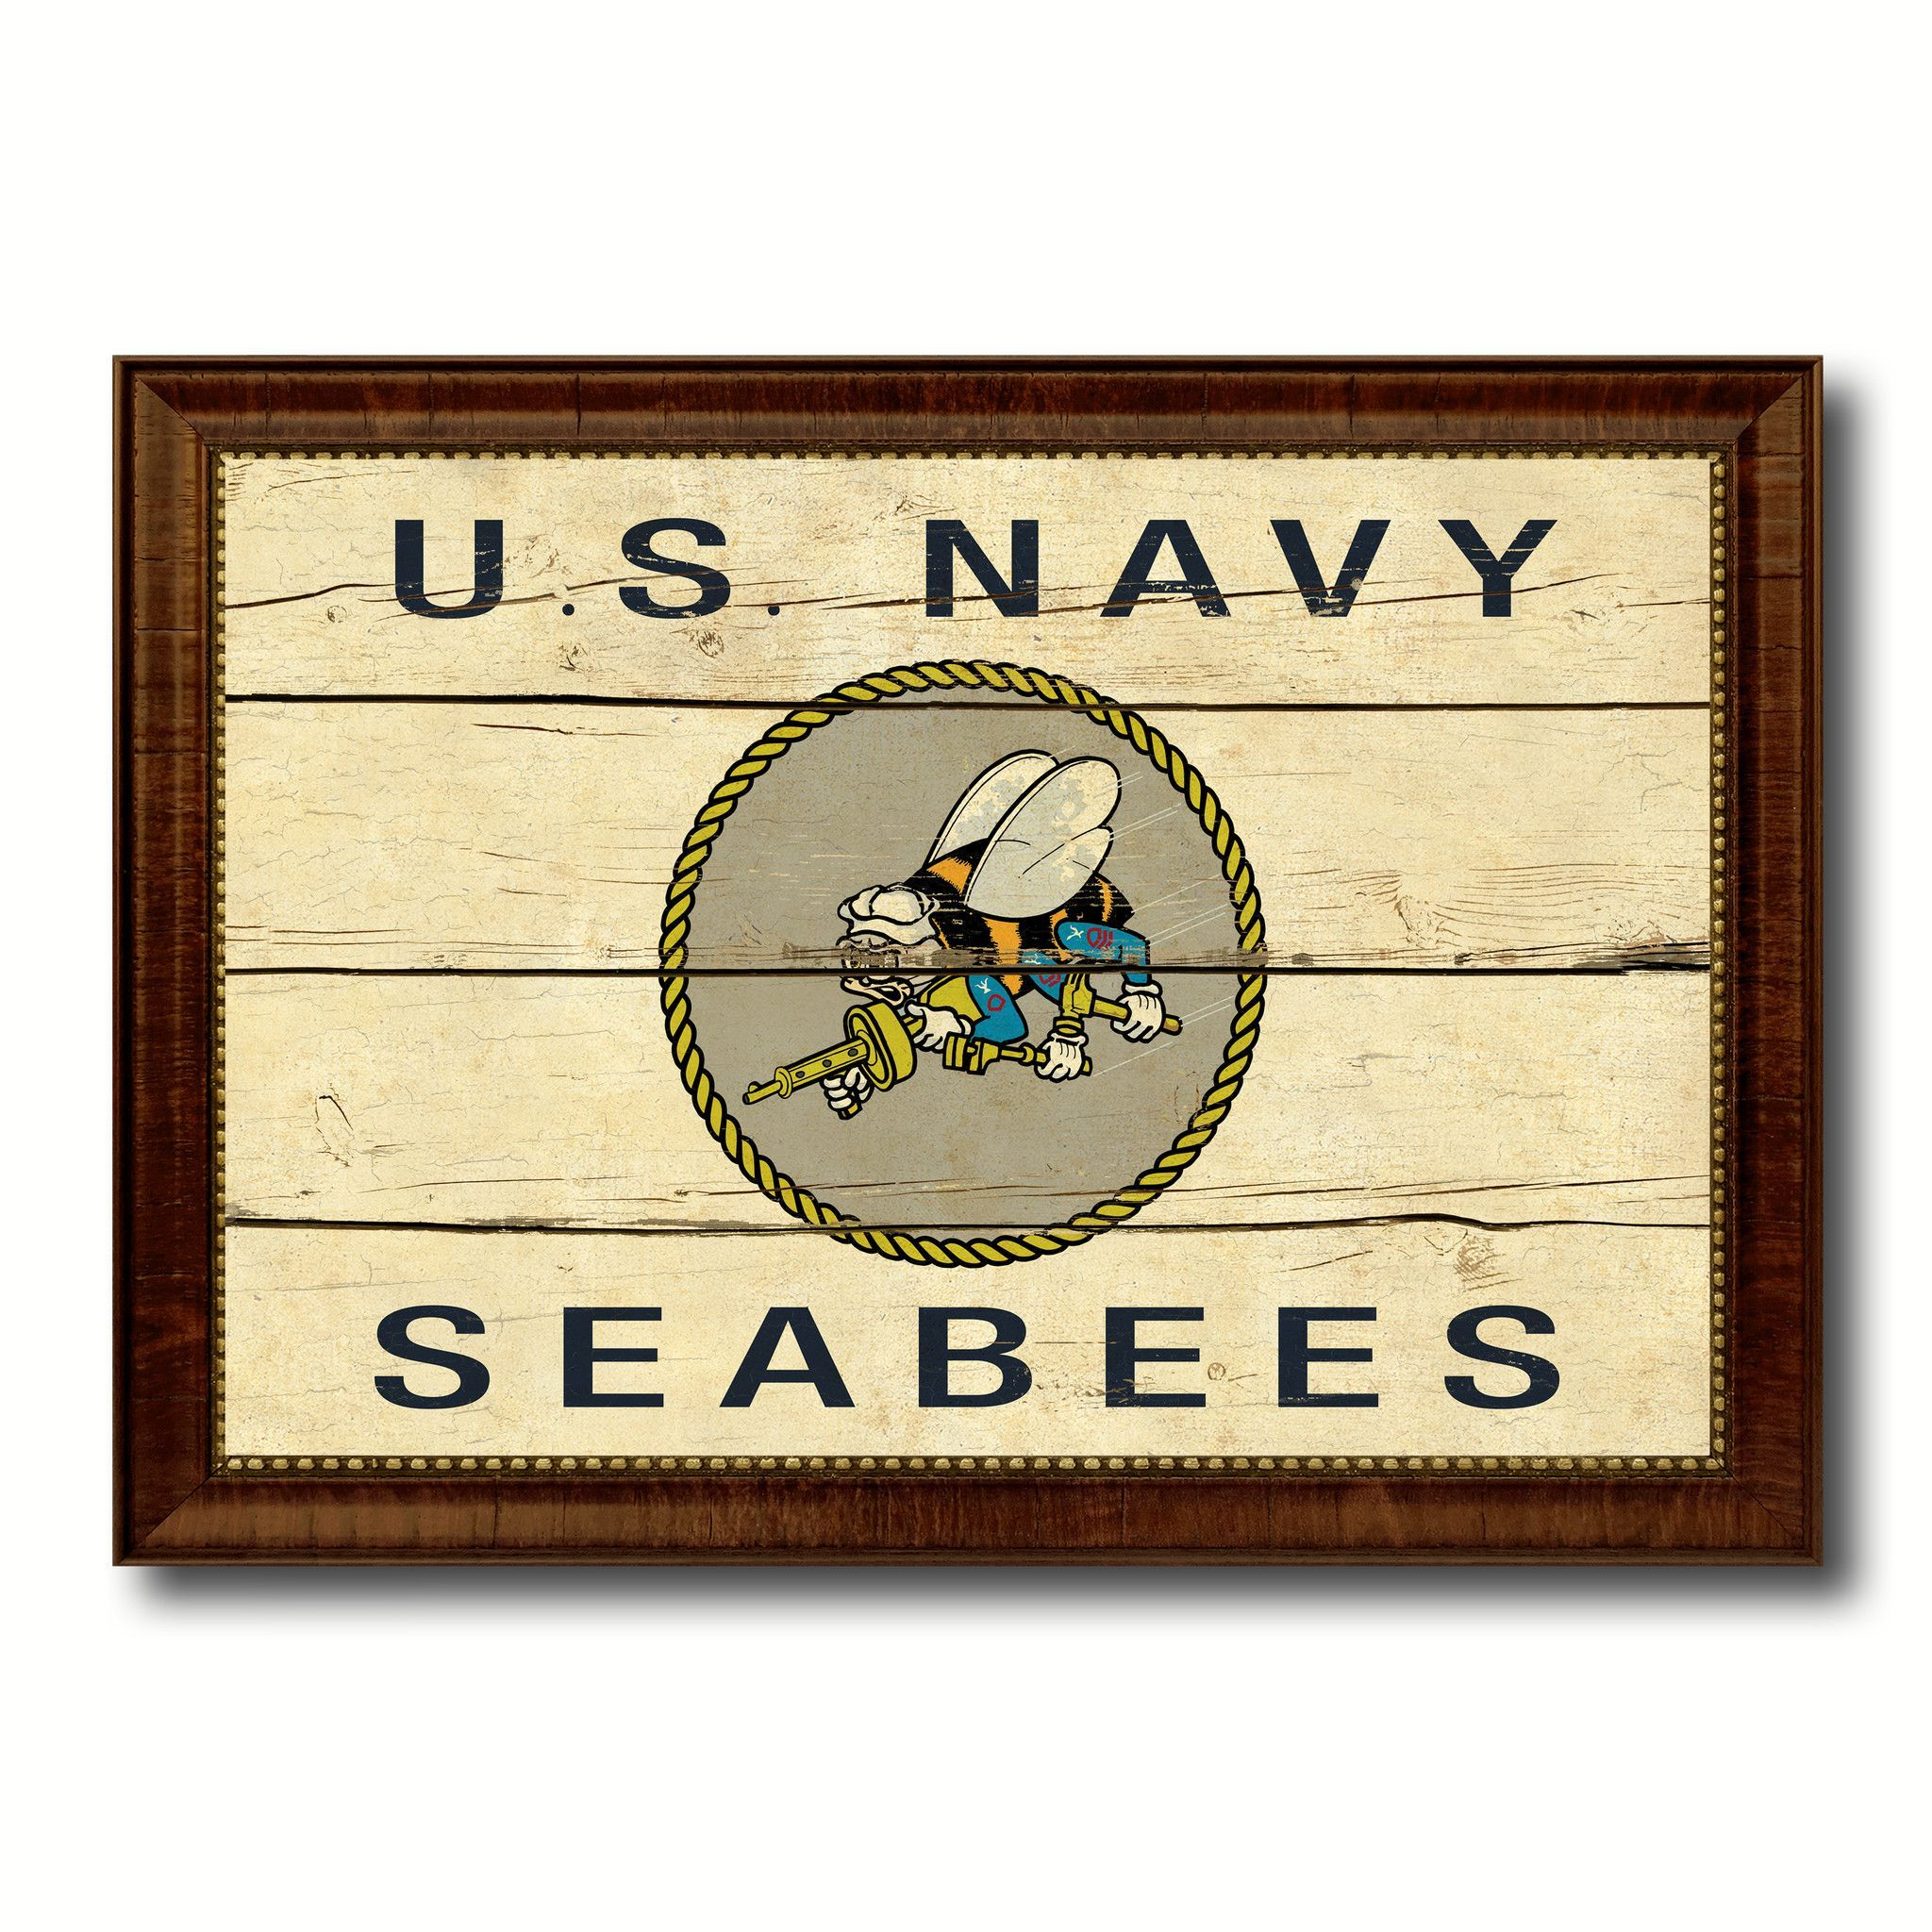 US Navy Seabees Military Vintage Flag Brown Picture Frame Gifts ...